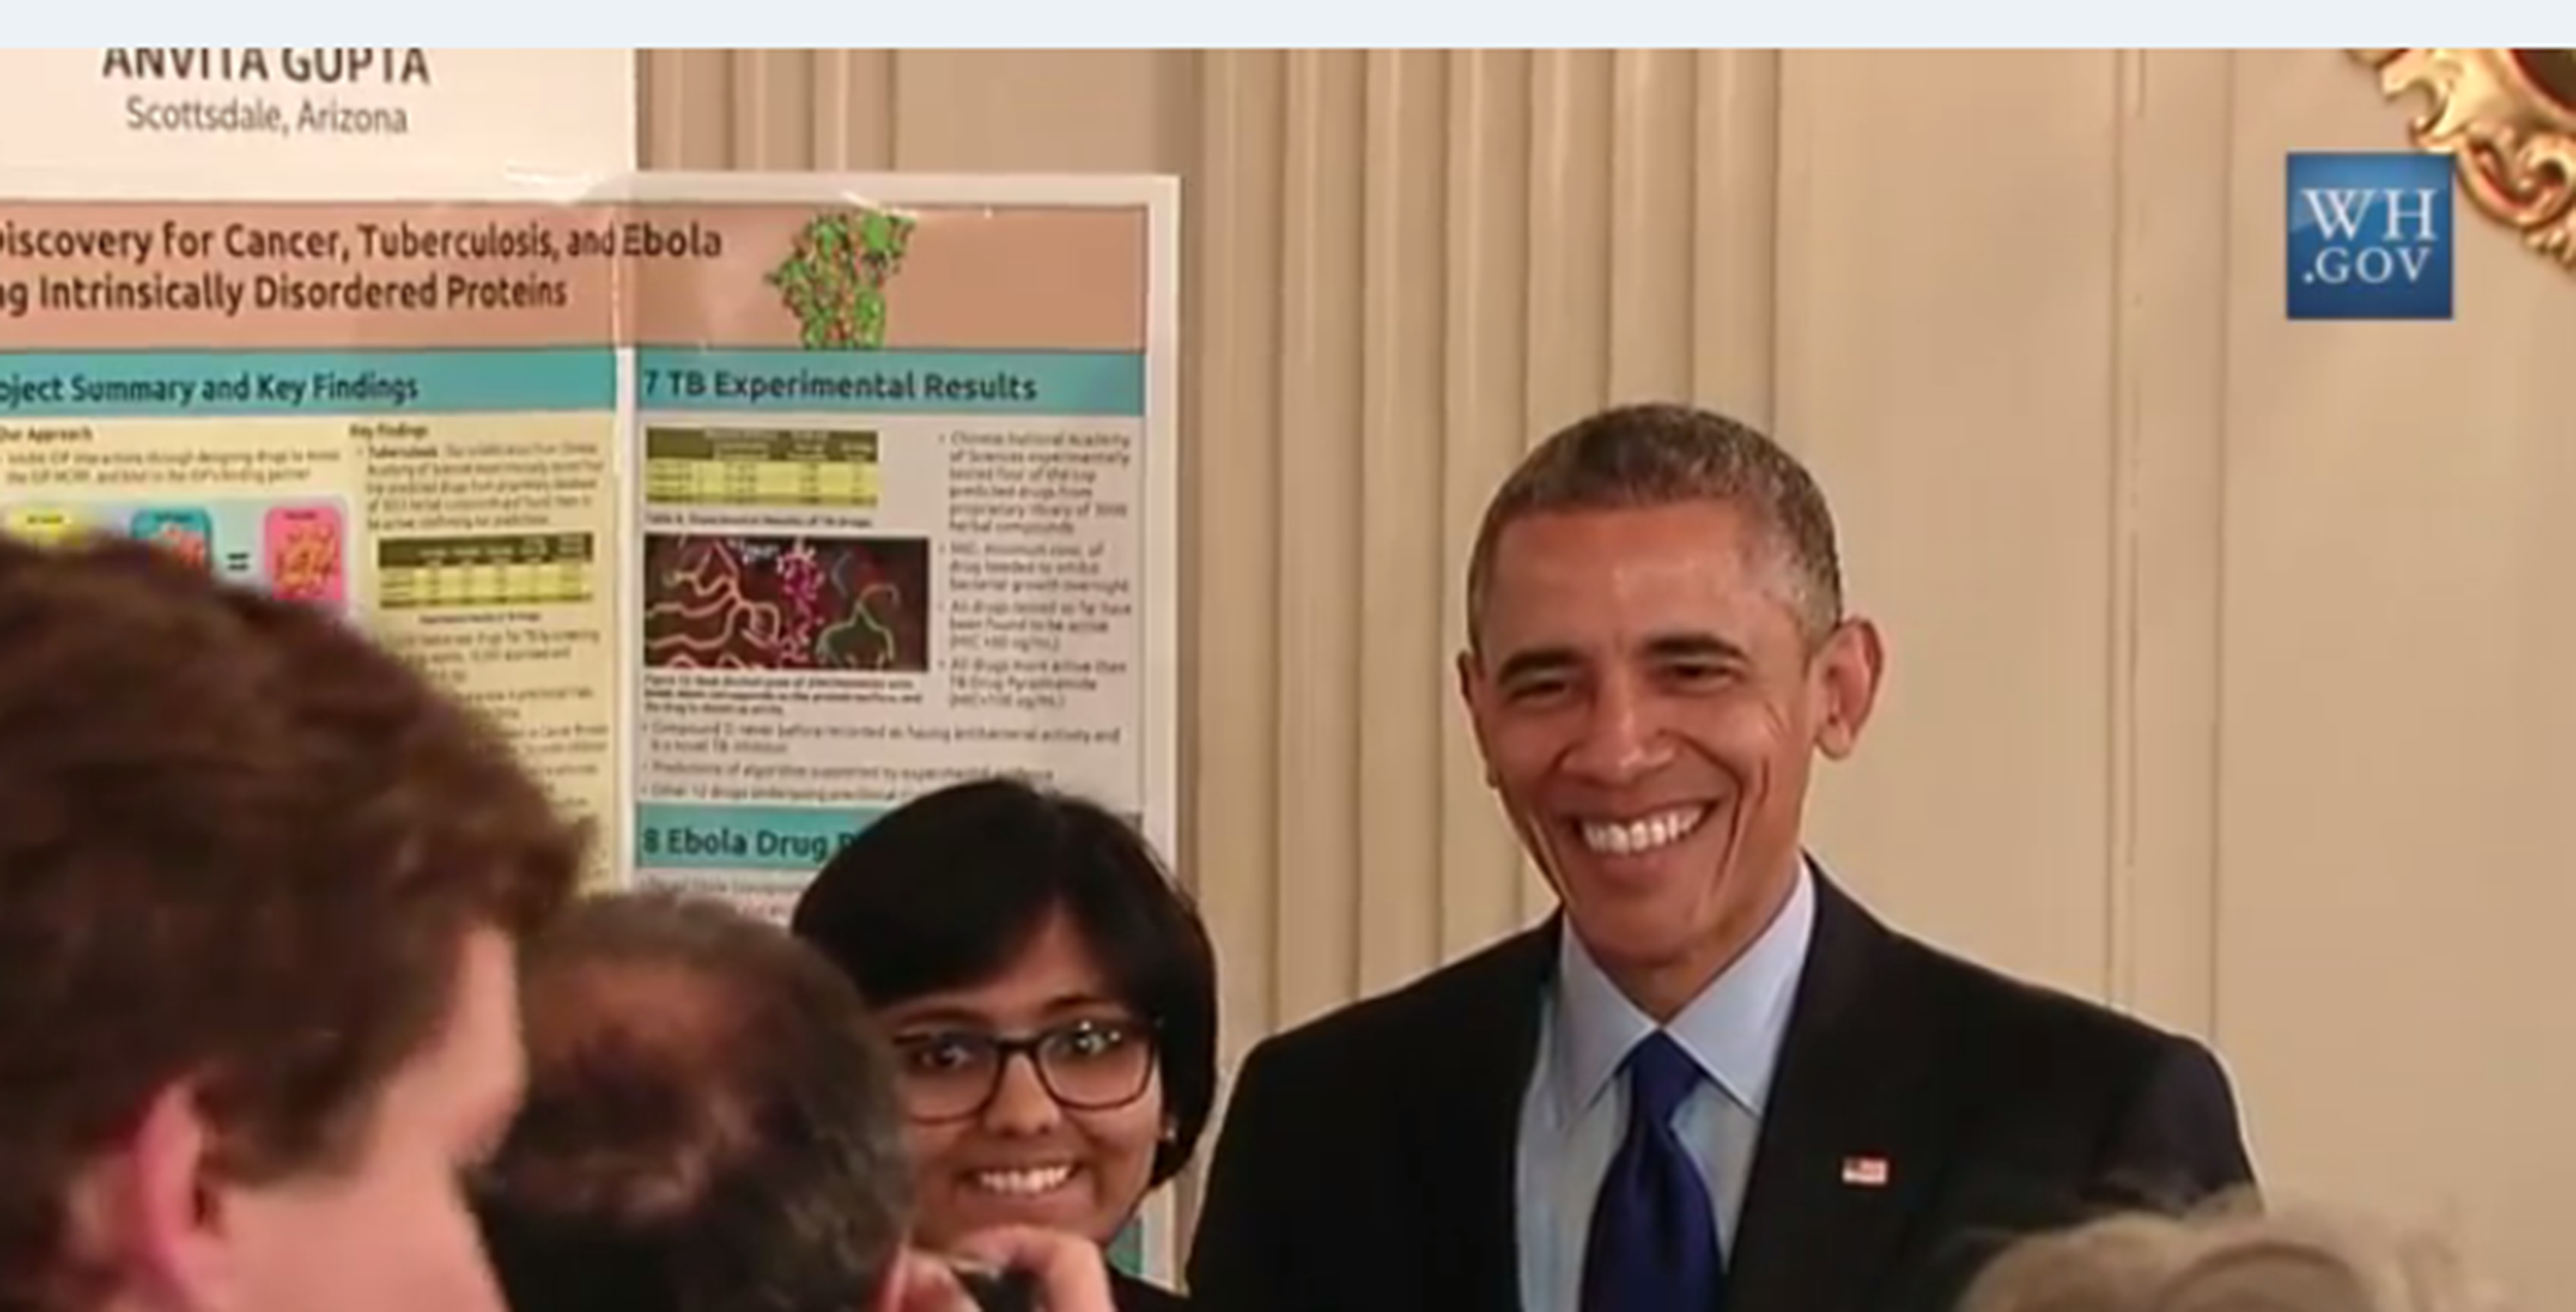 Anvita Gupta, Intel ISEF 2013 and Intel STS 2015 award winner, impressed President Obama with her research and creation of a computer program that can identify new drugs.